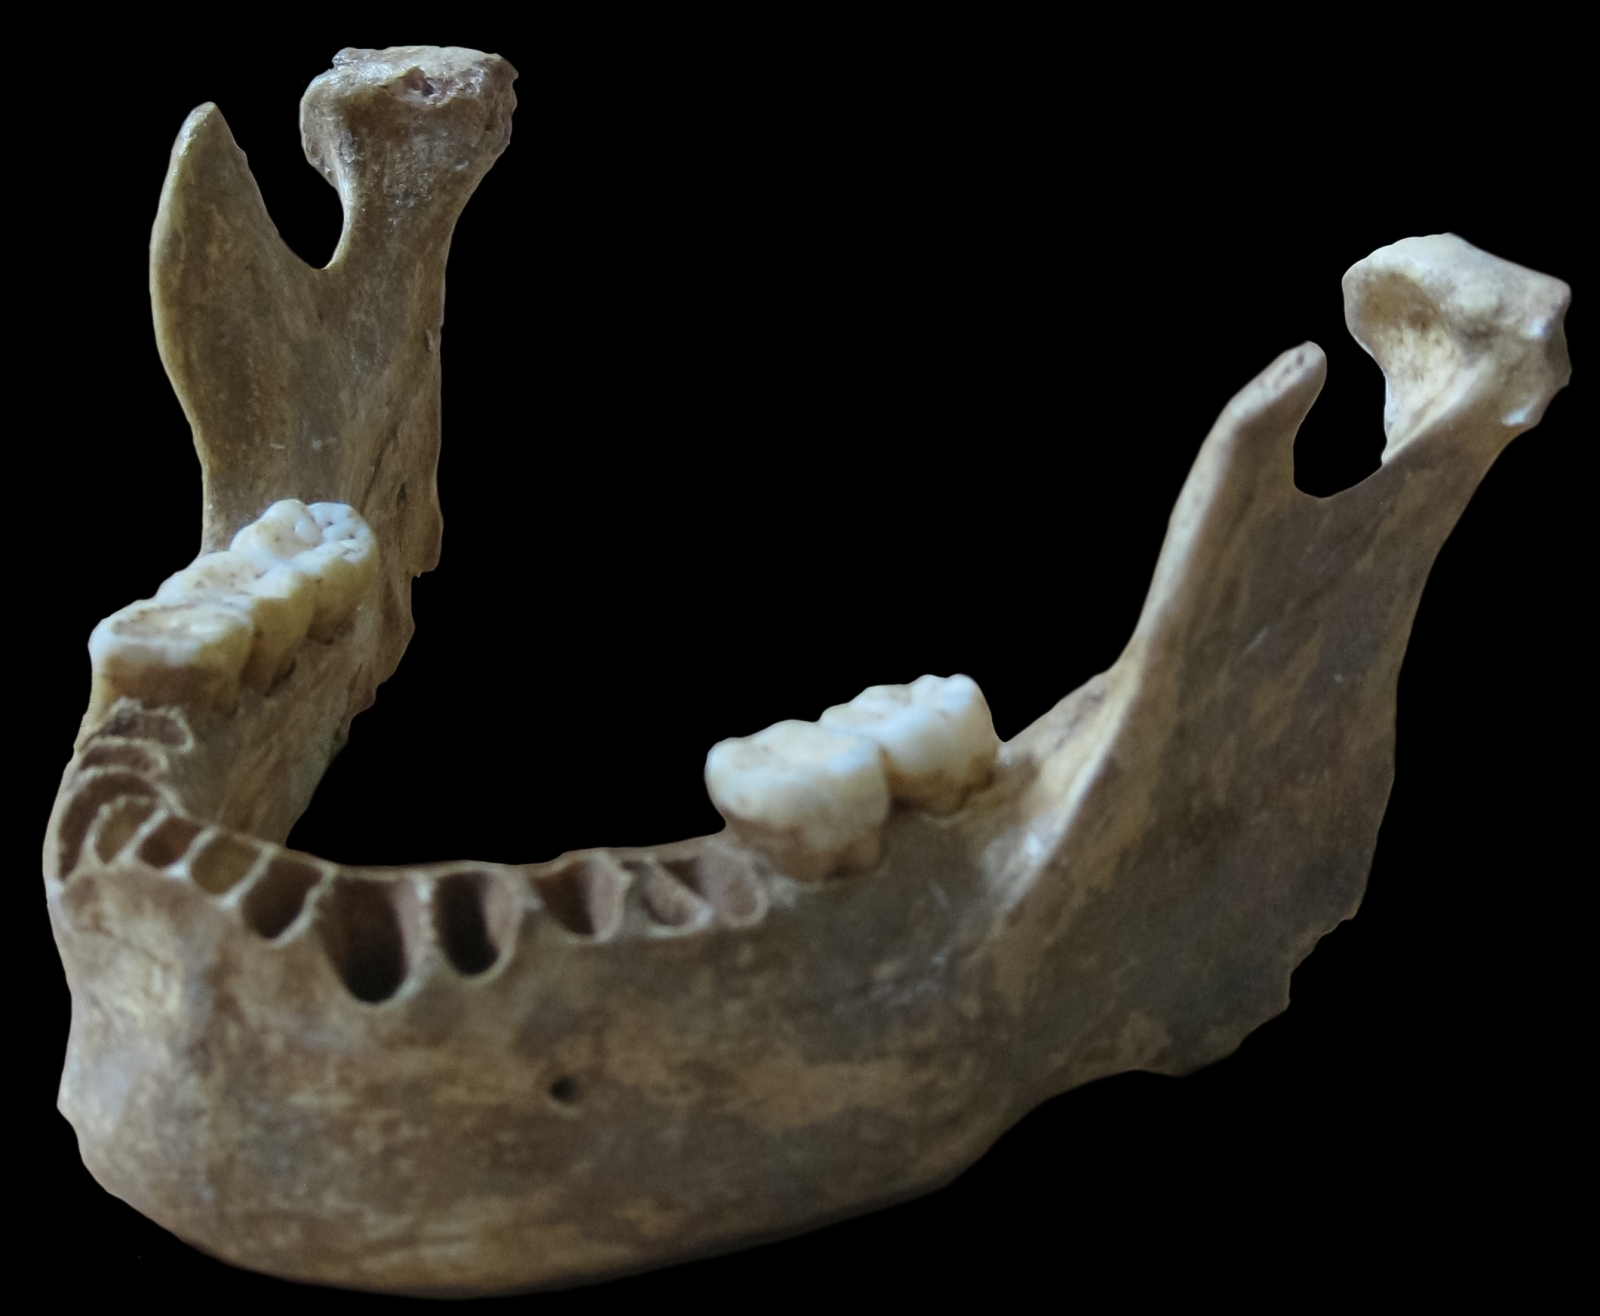 Neanderthal jaw bone